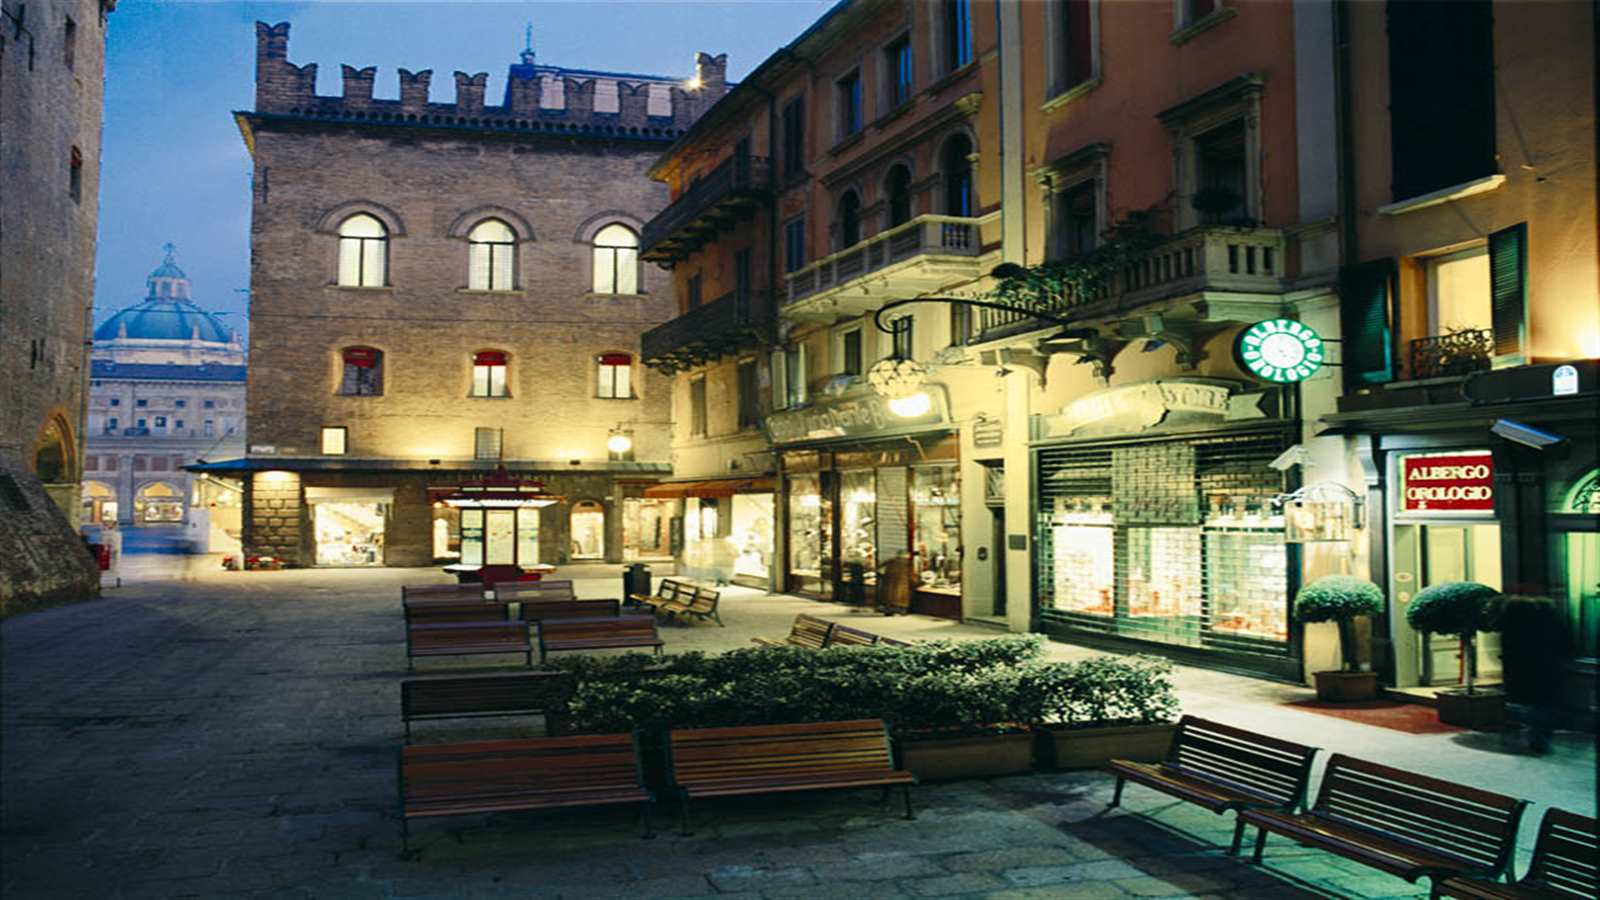 Vacanze bologna art hotel orologio food valley travel for Hotel art orologio bologna